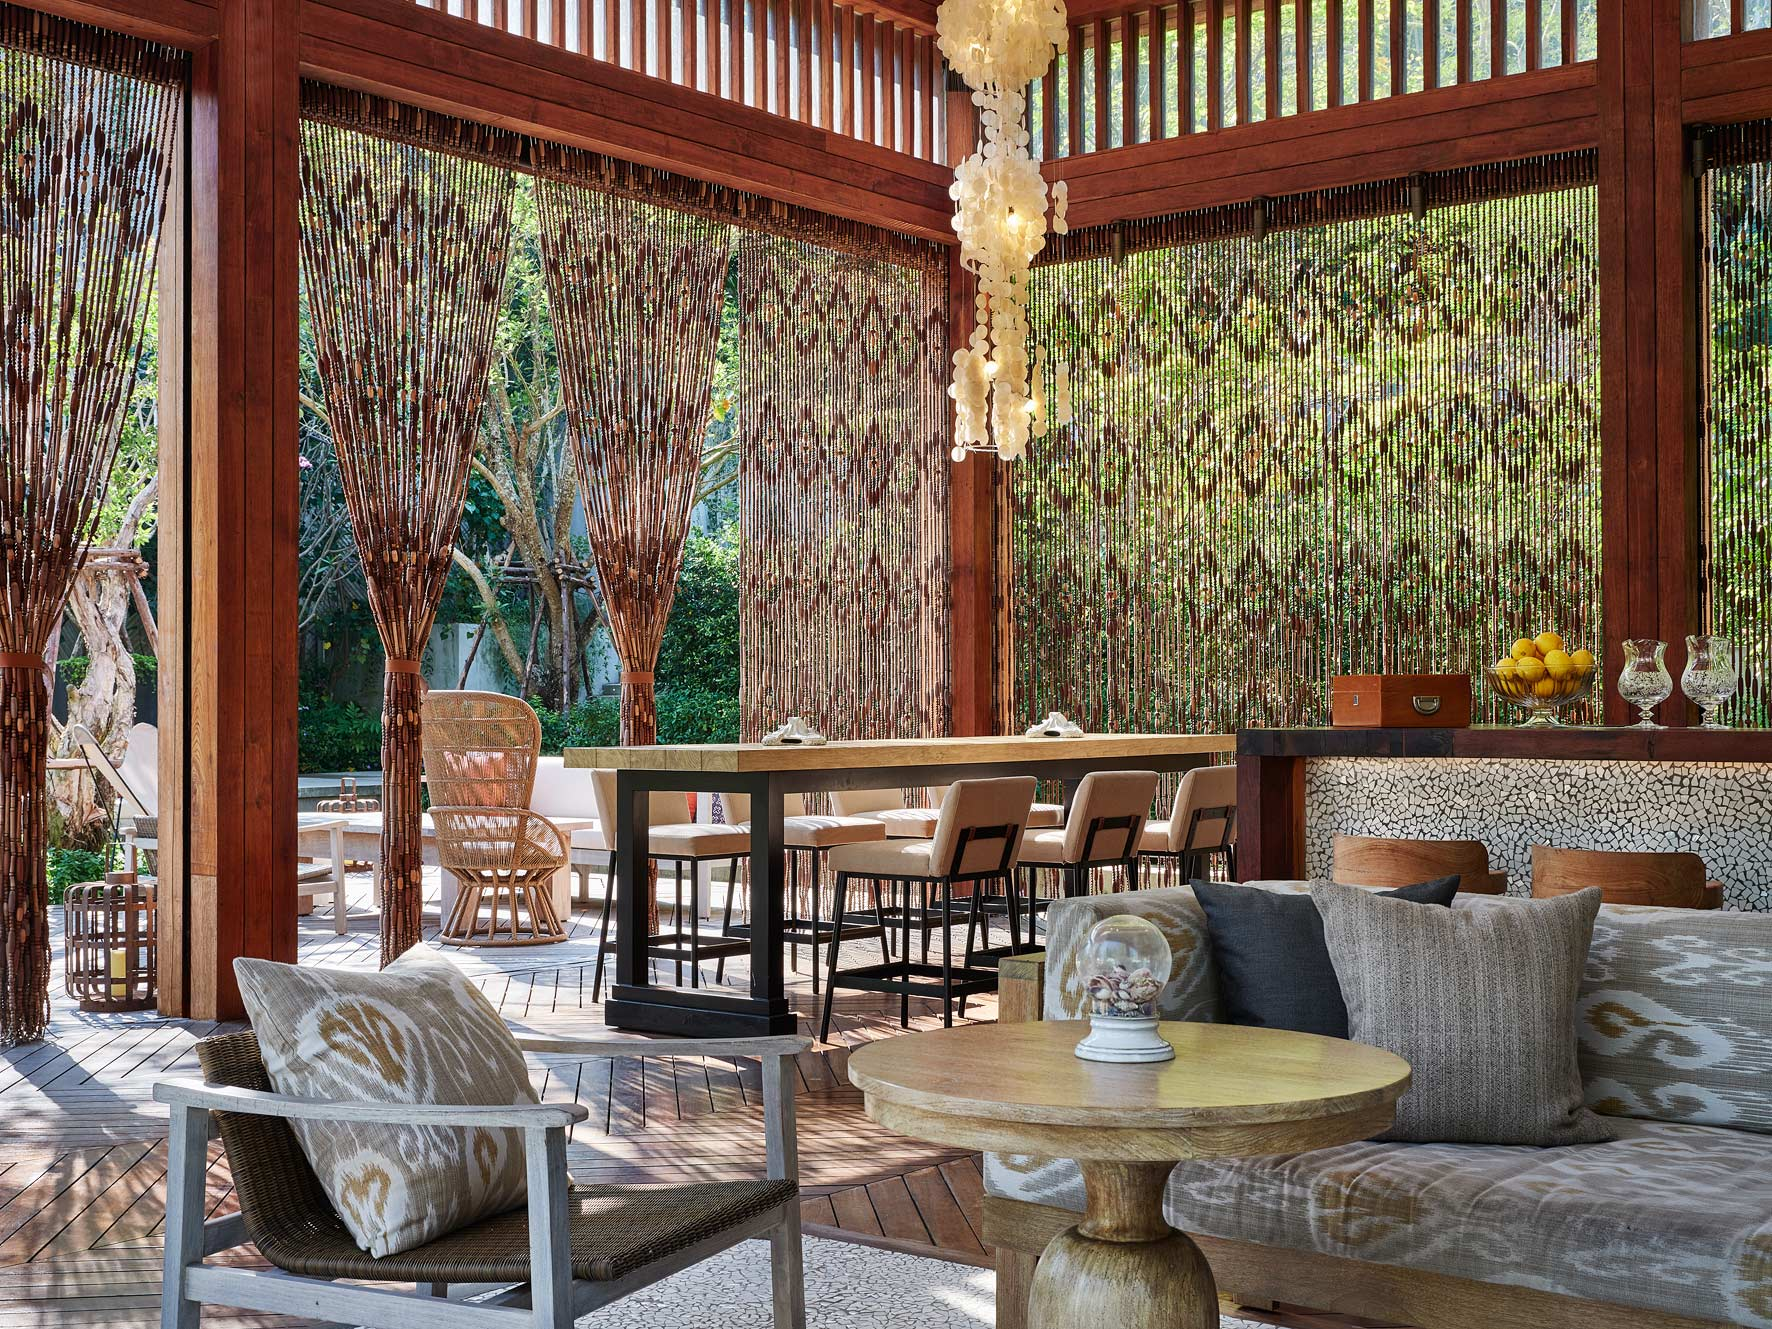 Owen Raggett,  architectural photographer Singapore. Rosewood Hotel, Phuket, Thailand. Architectural photographer Asia